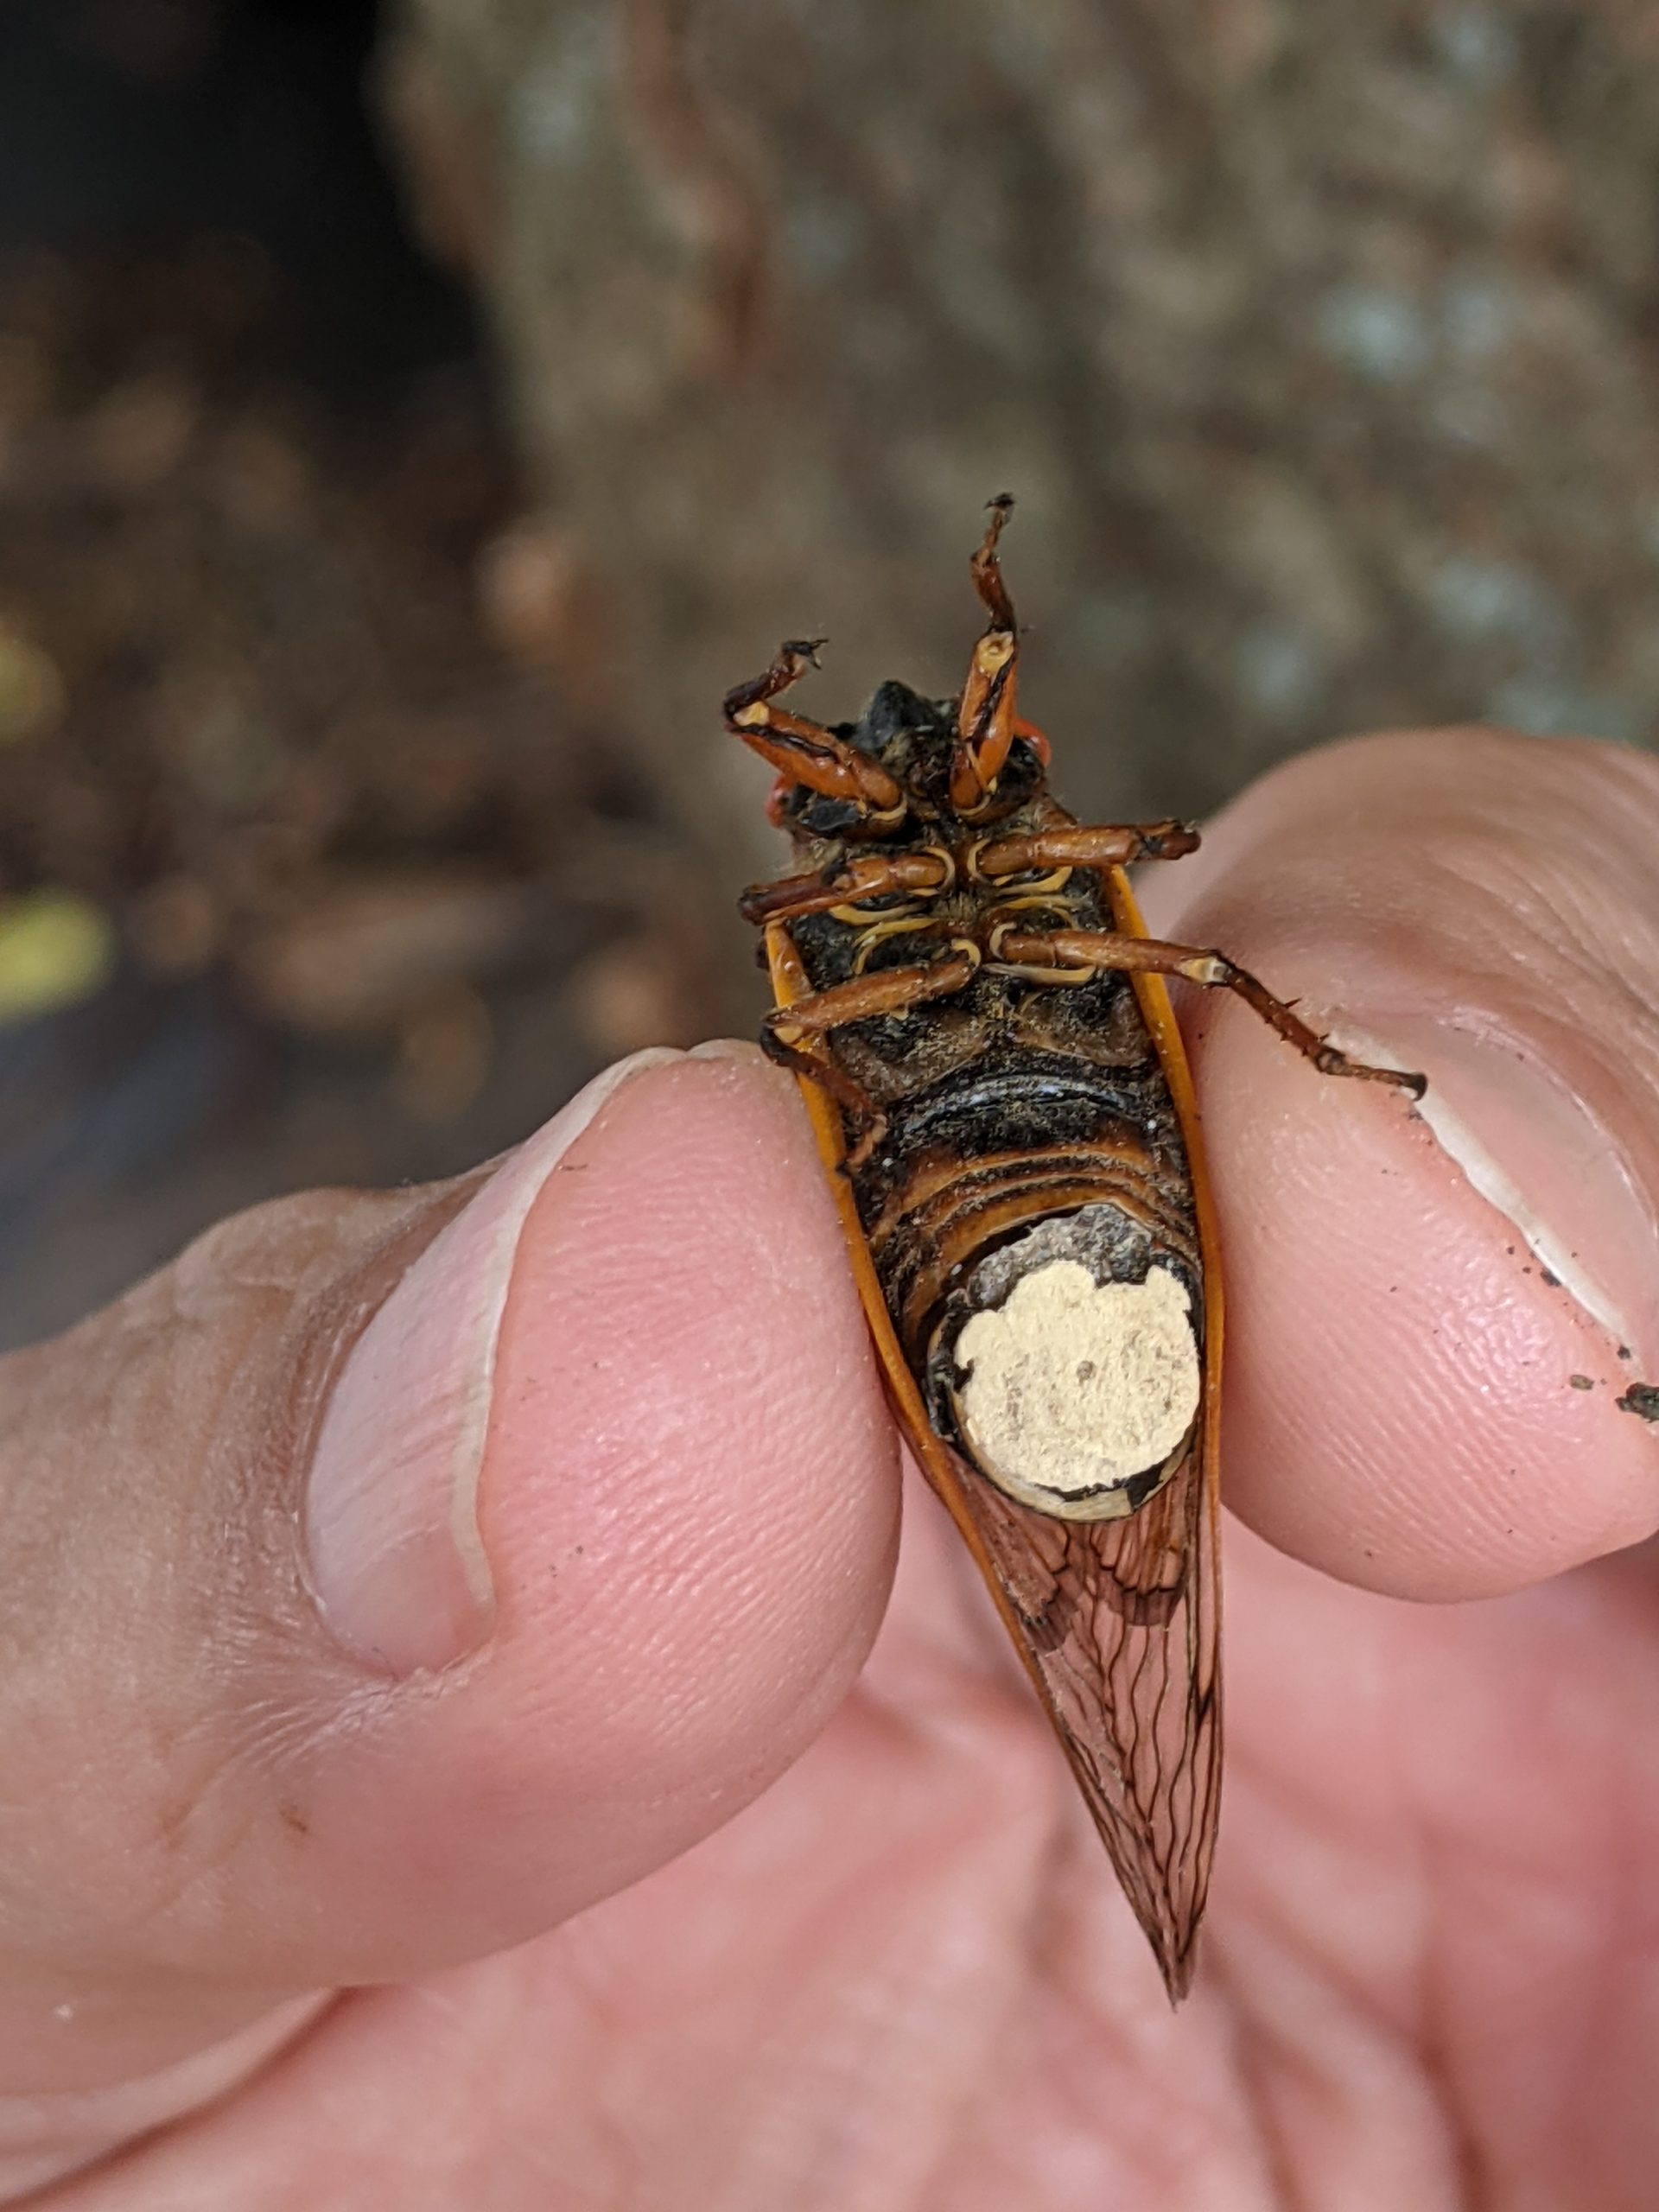 The underside of a cicada with white fungus.